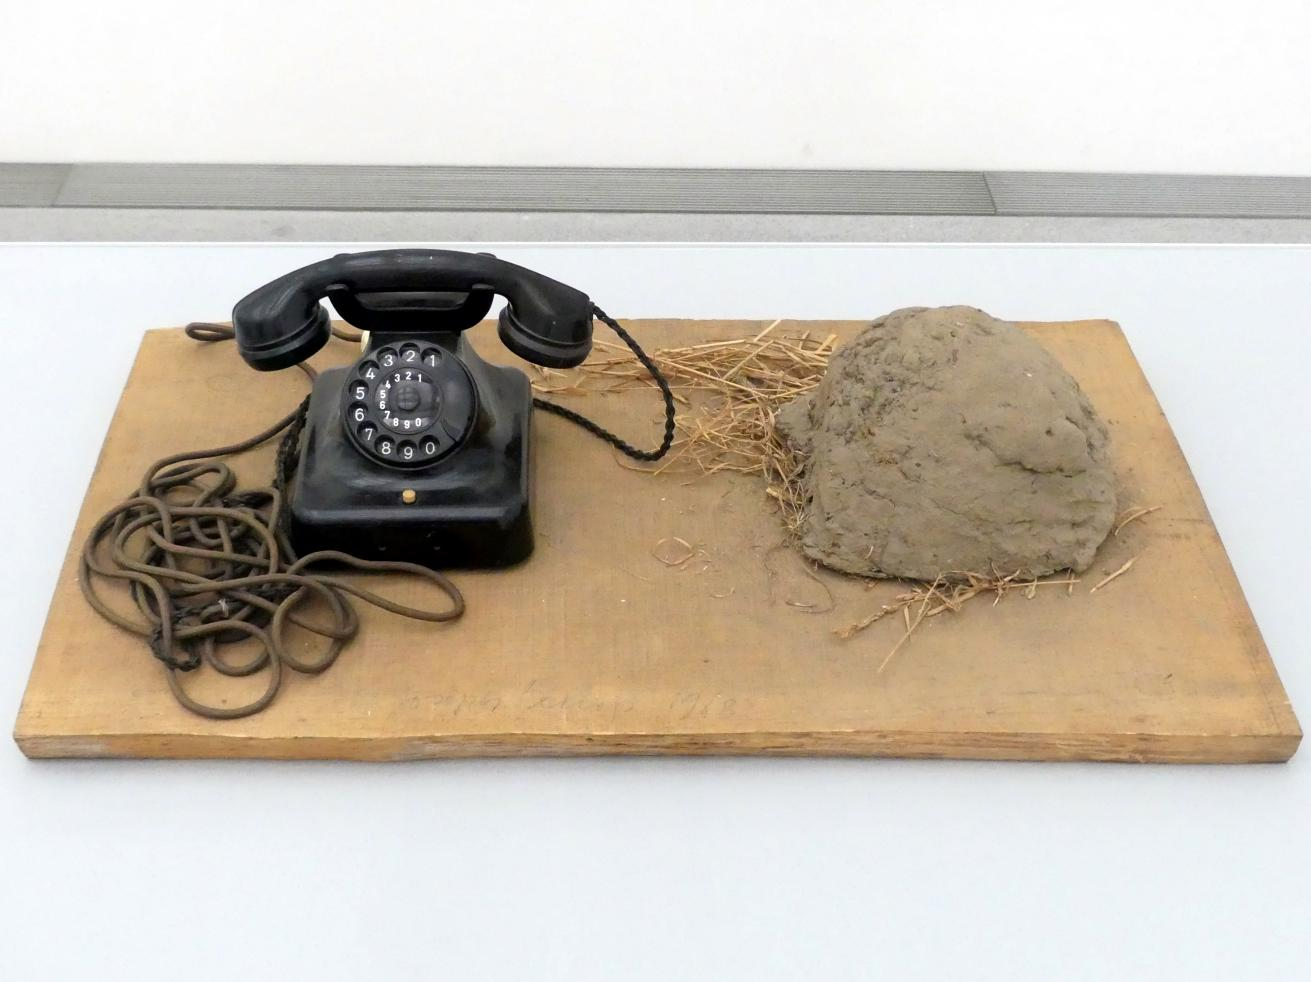 Joseph Beuys: Erdtelephon, 1968